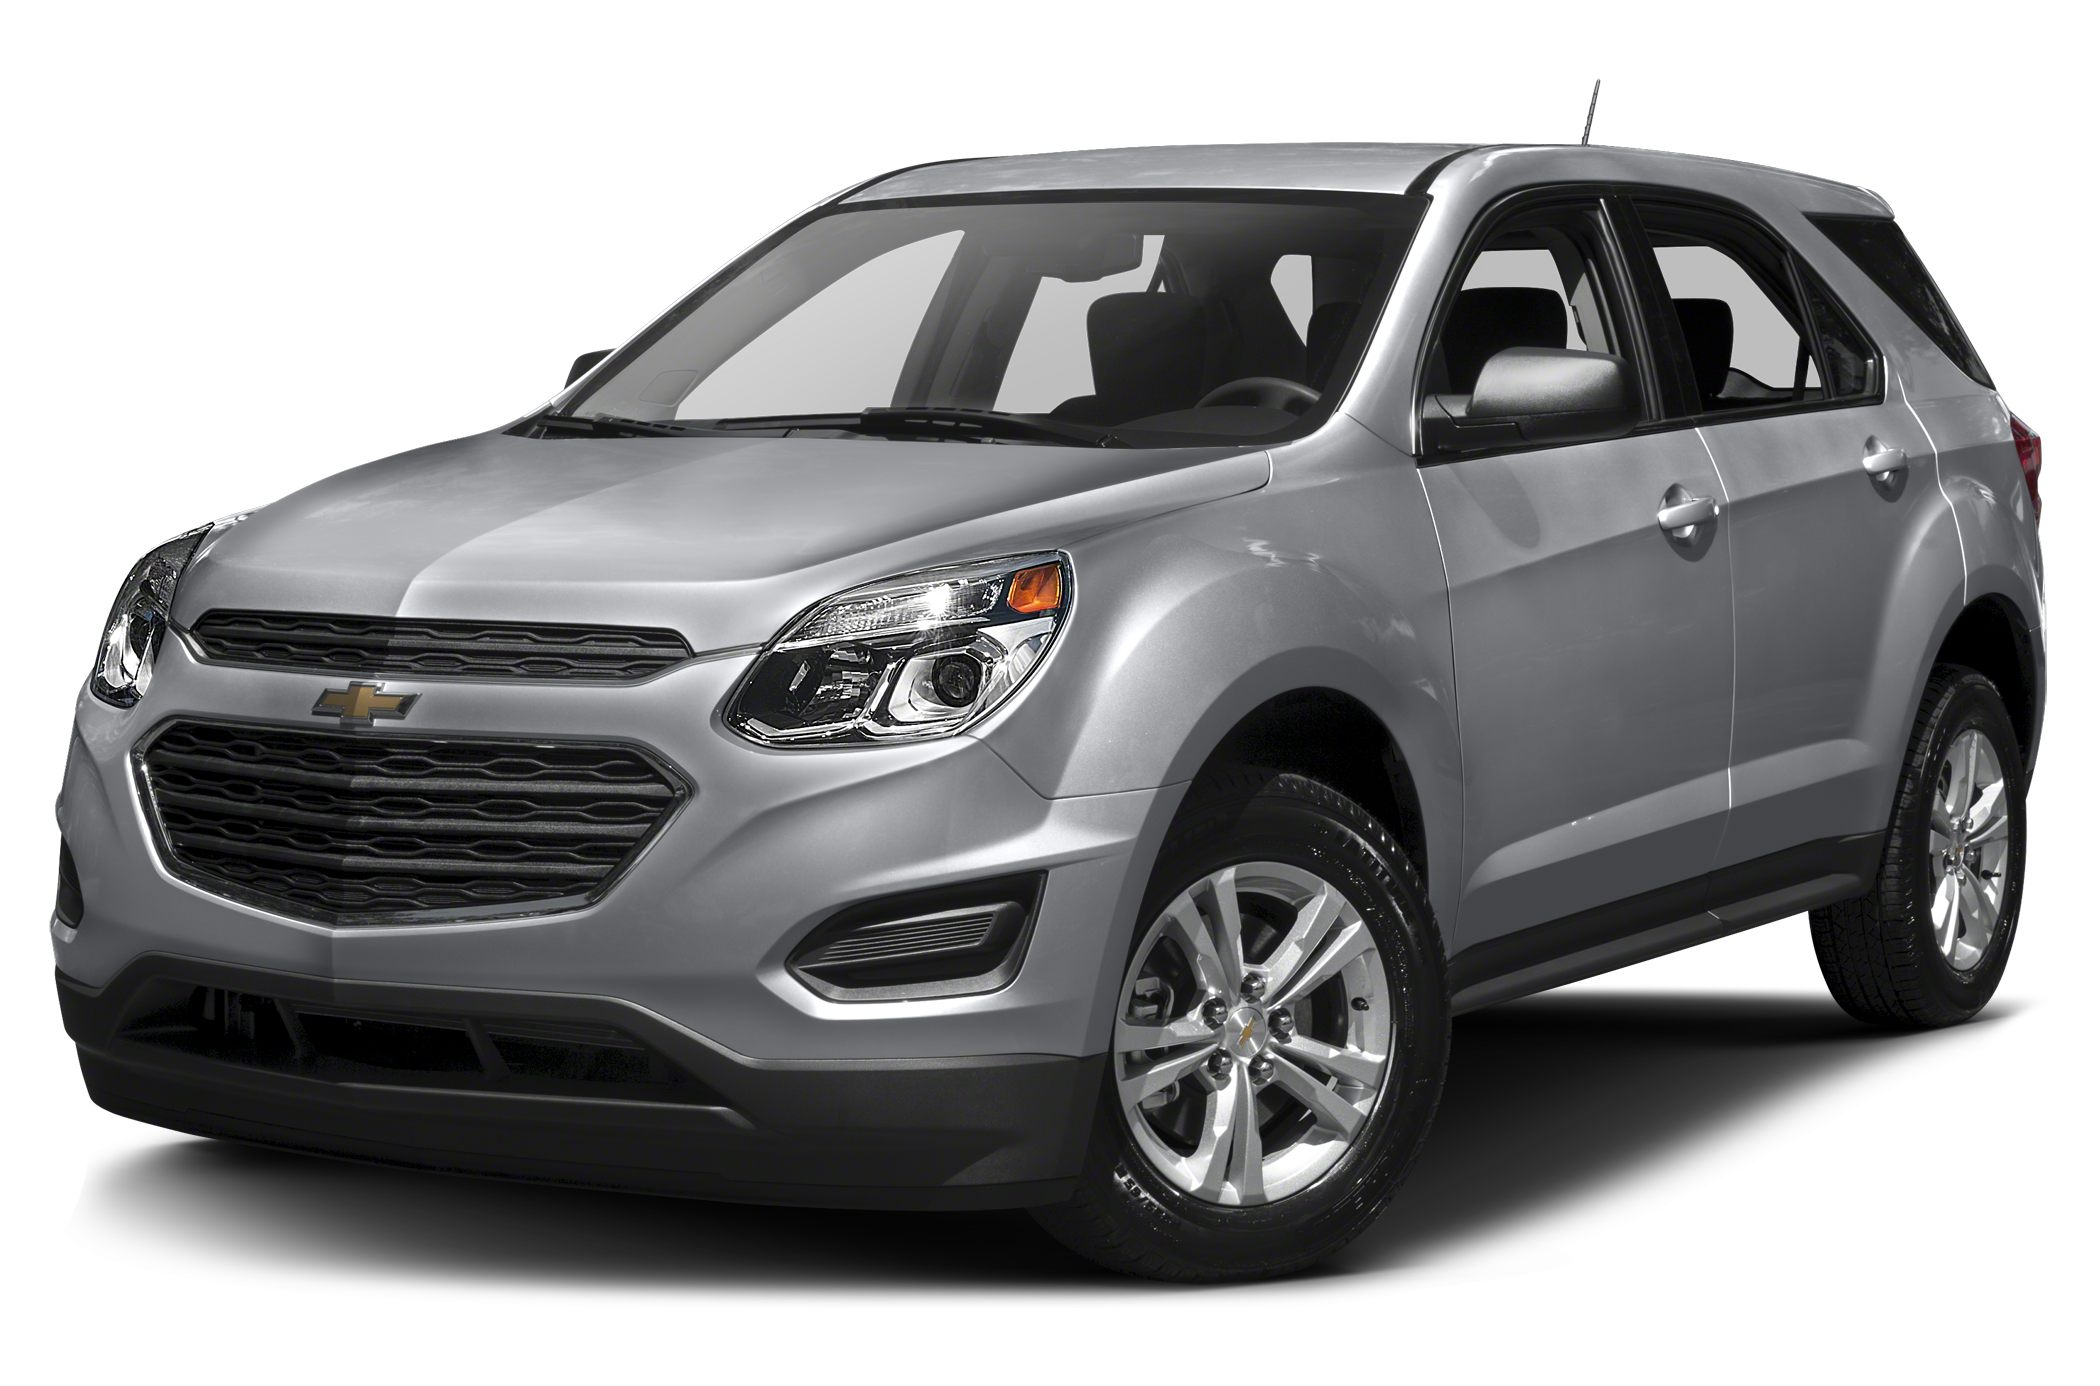 2017 Chevrolet Equinox LS Front wheel Drive Pricing and Options